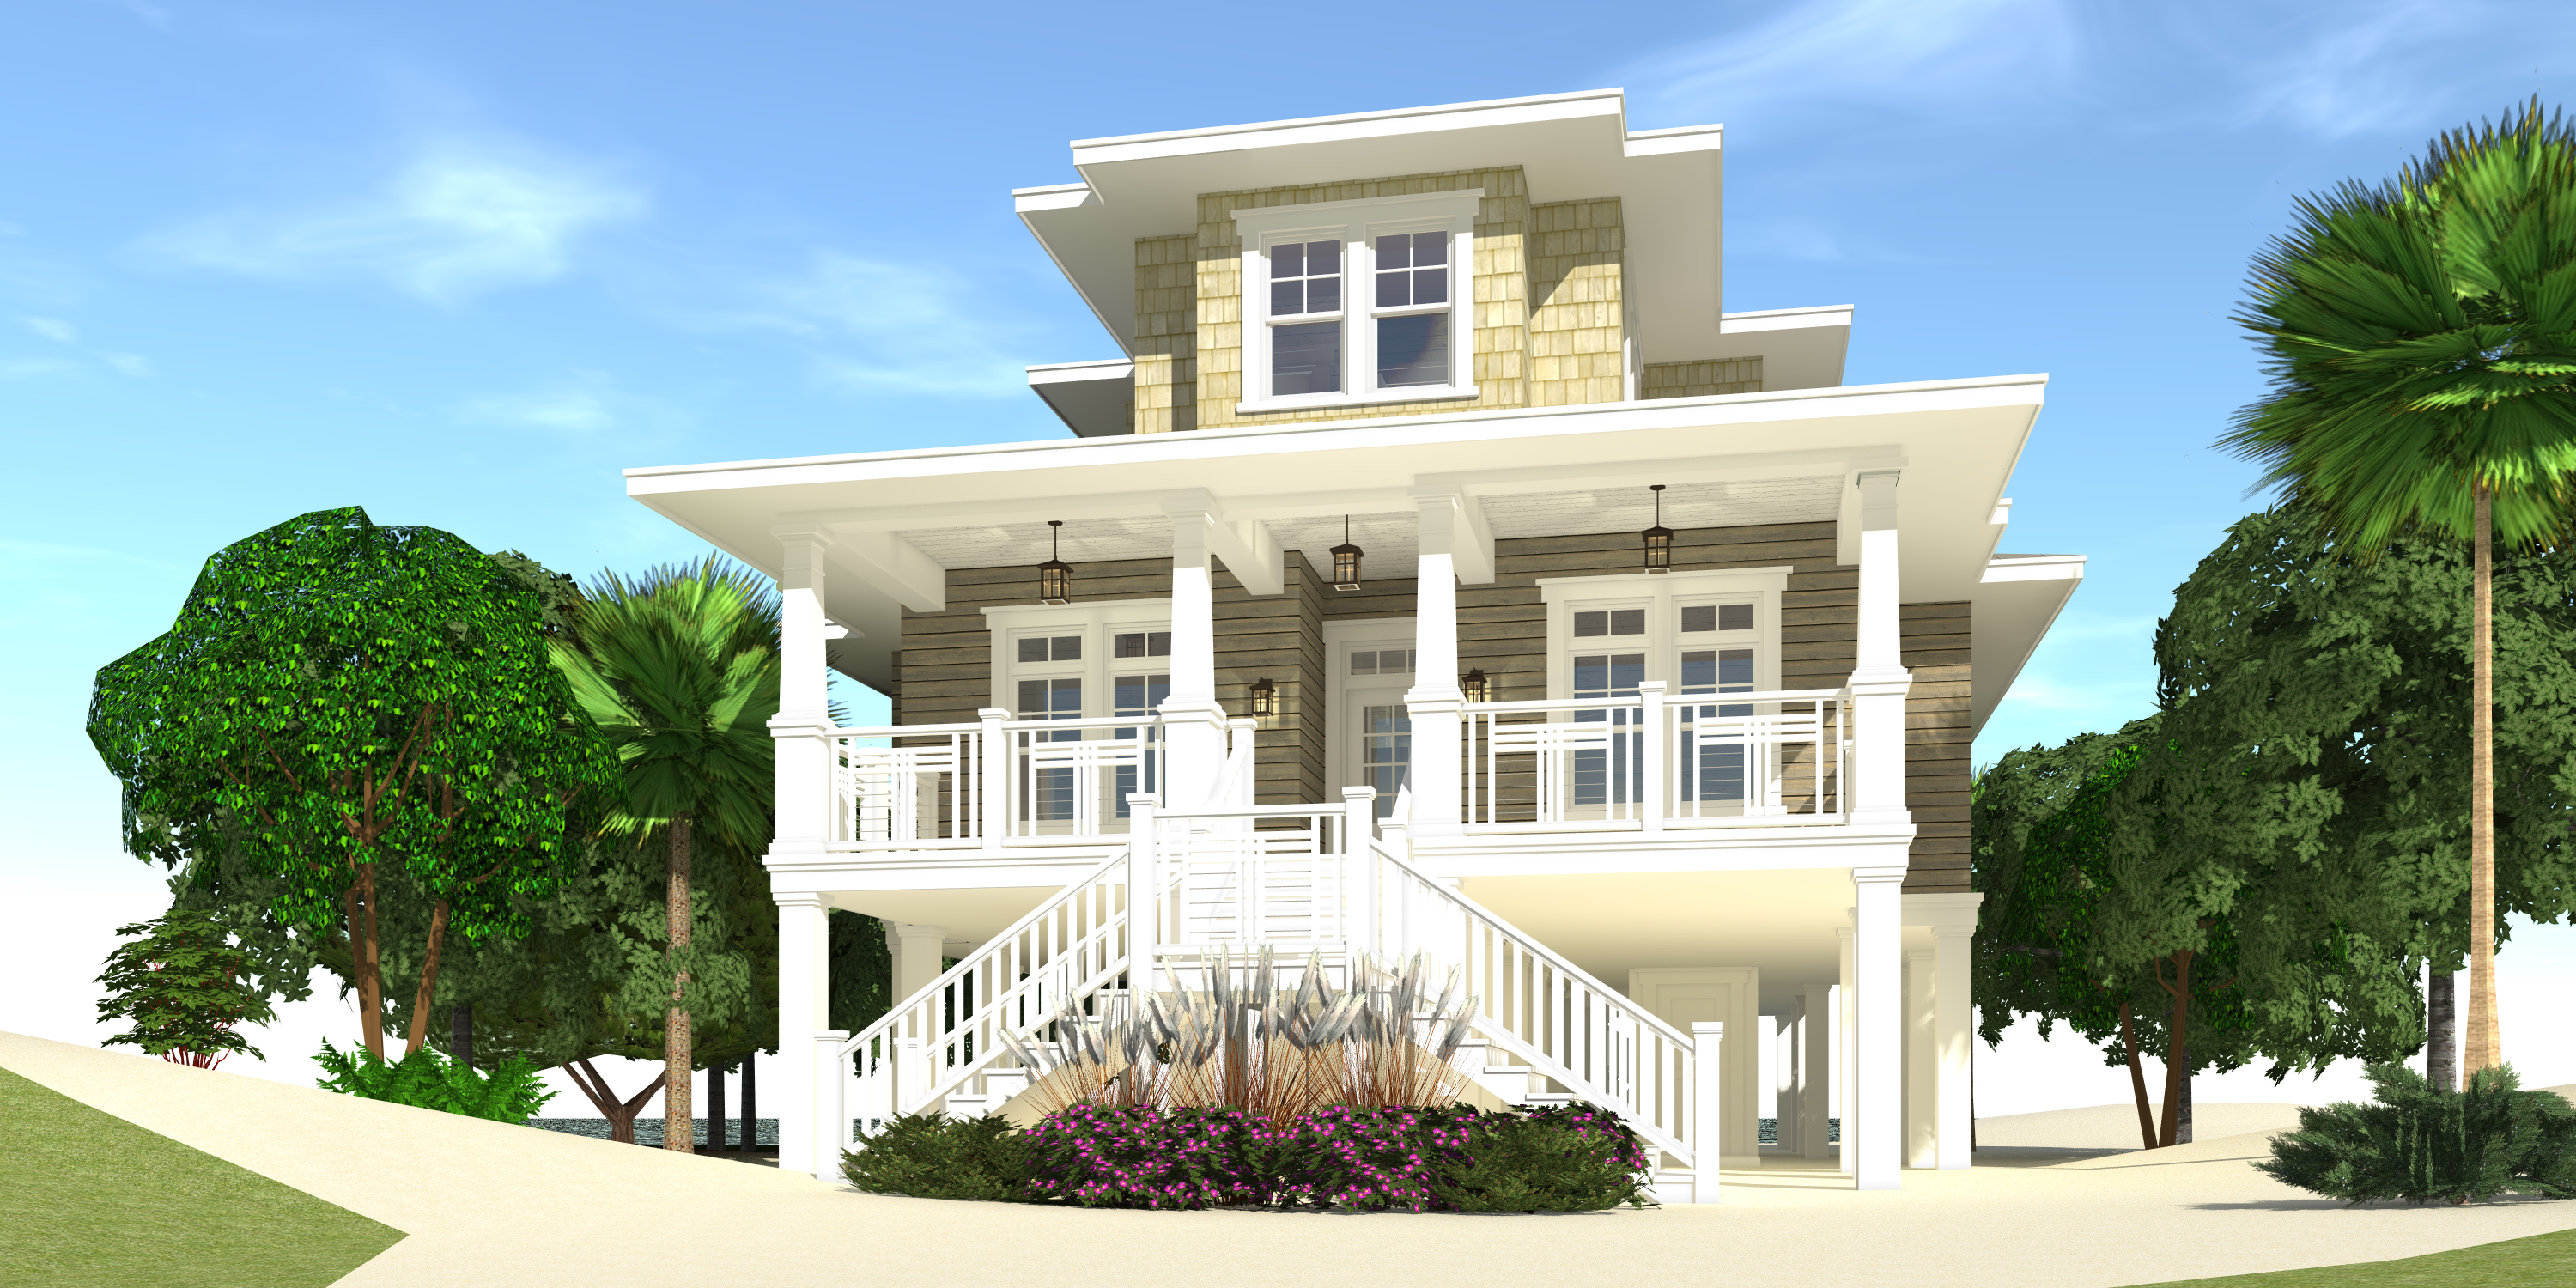 Fenton house plan tyree house plans for Beach style home designs